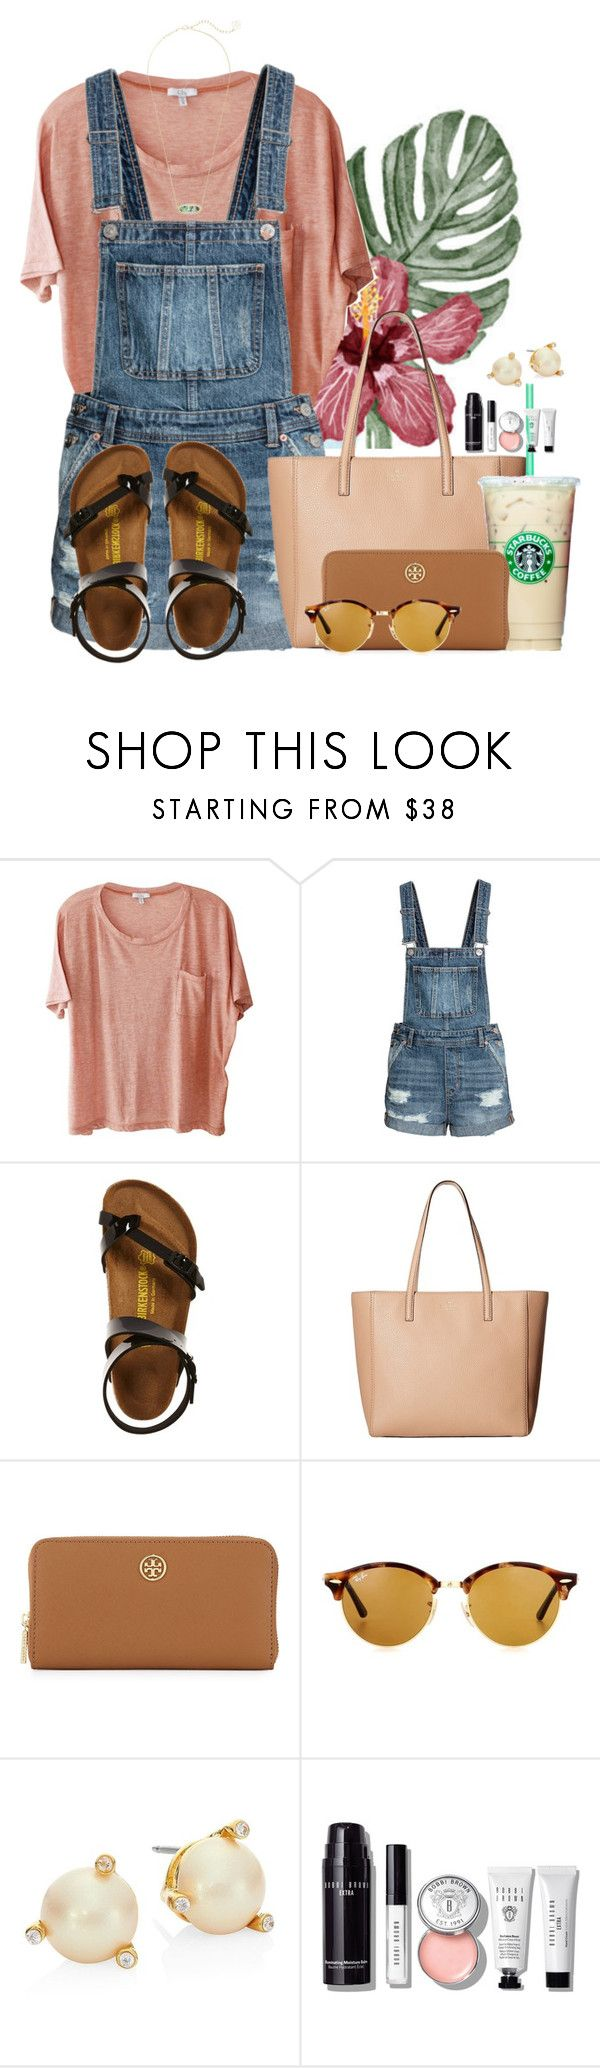 ~When life gets bitter, sweeten it with gratitude~ by flroasburn ❤ liked on Polyvore featuring Clu, Birkenstock, Kate Spade, Tory Burch, Ray-Ban, Bobbi Brown Cosmetics and Kendra Scott